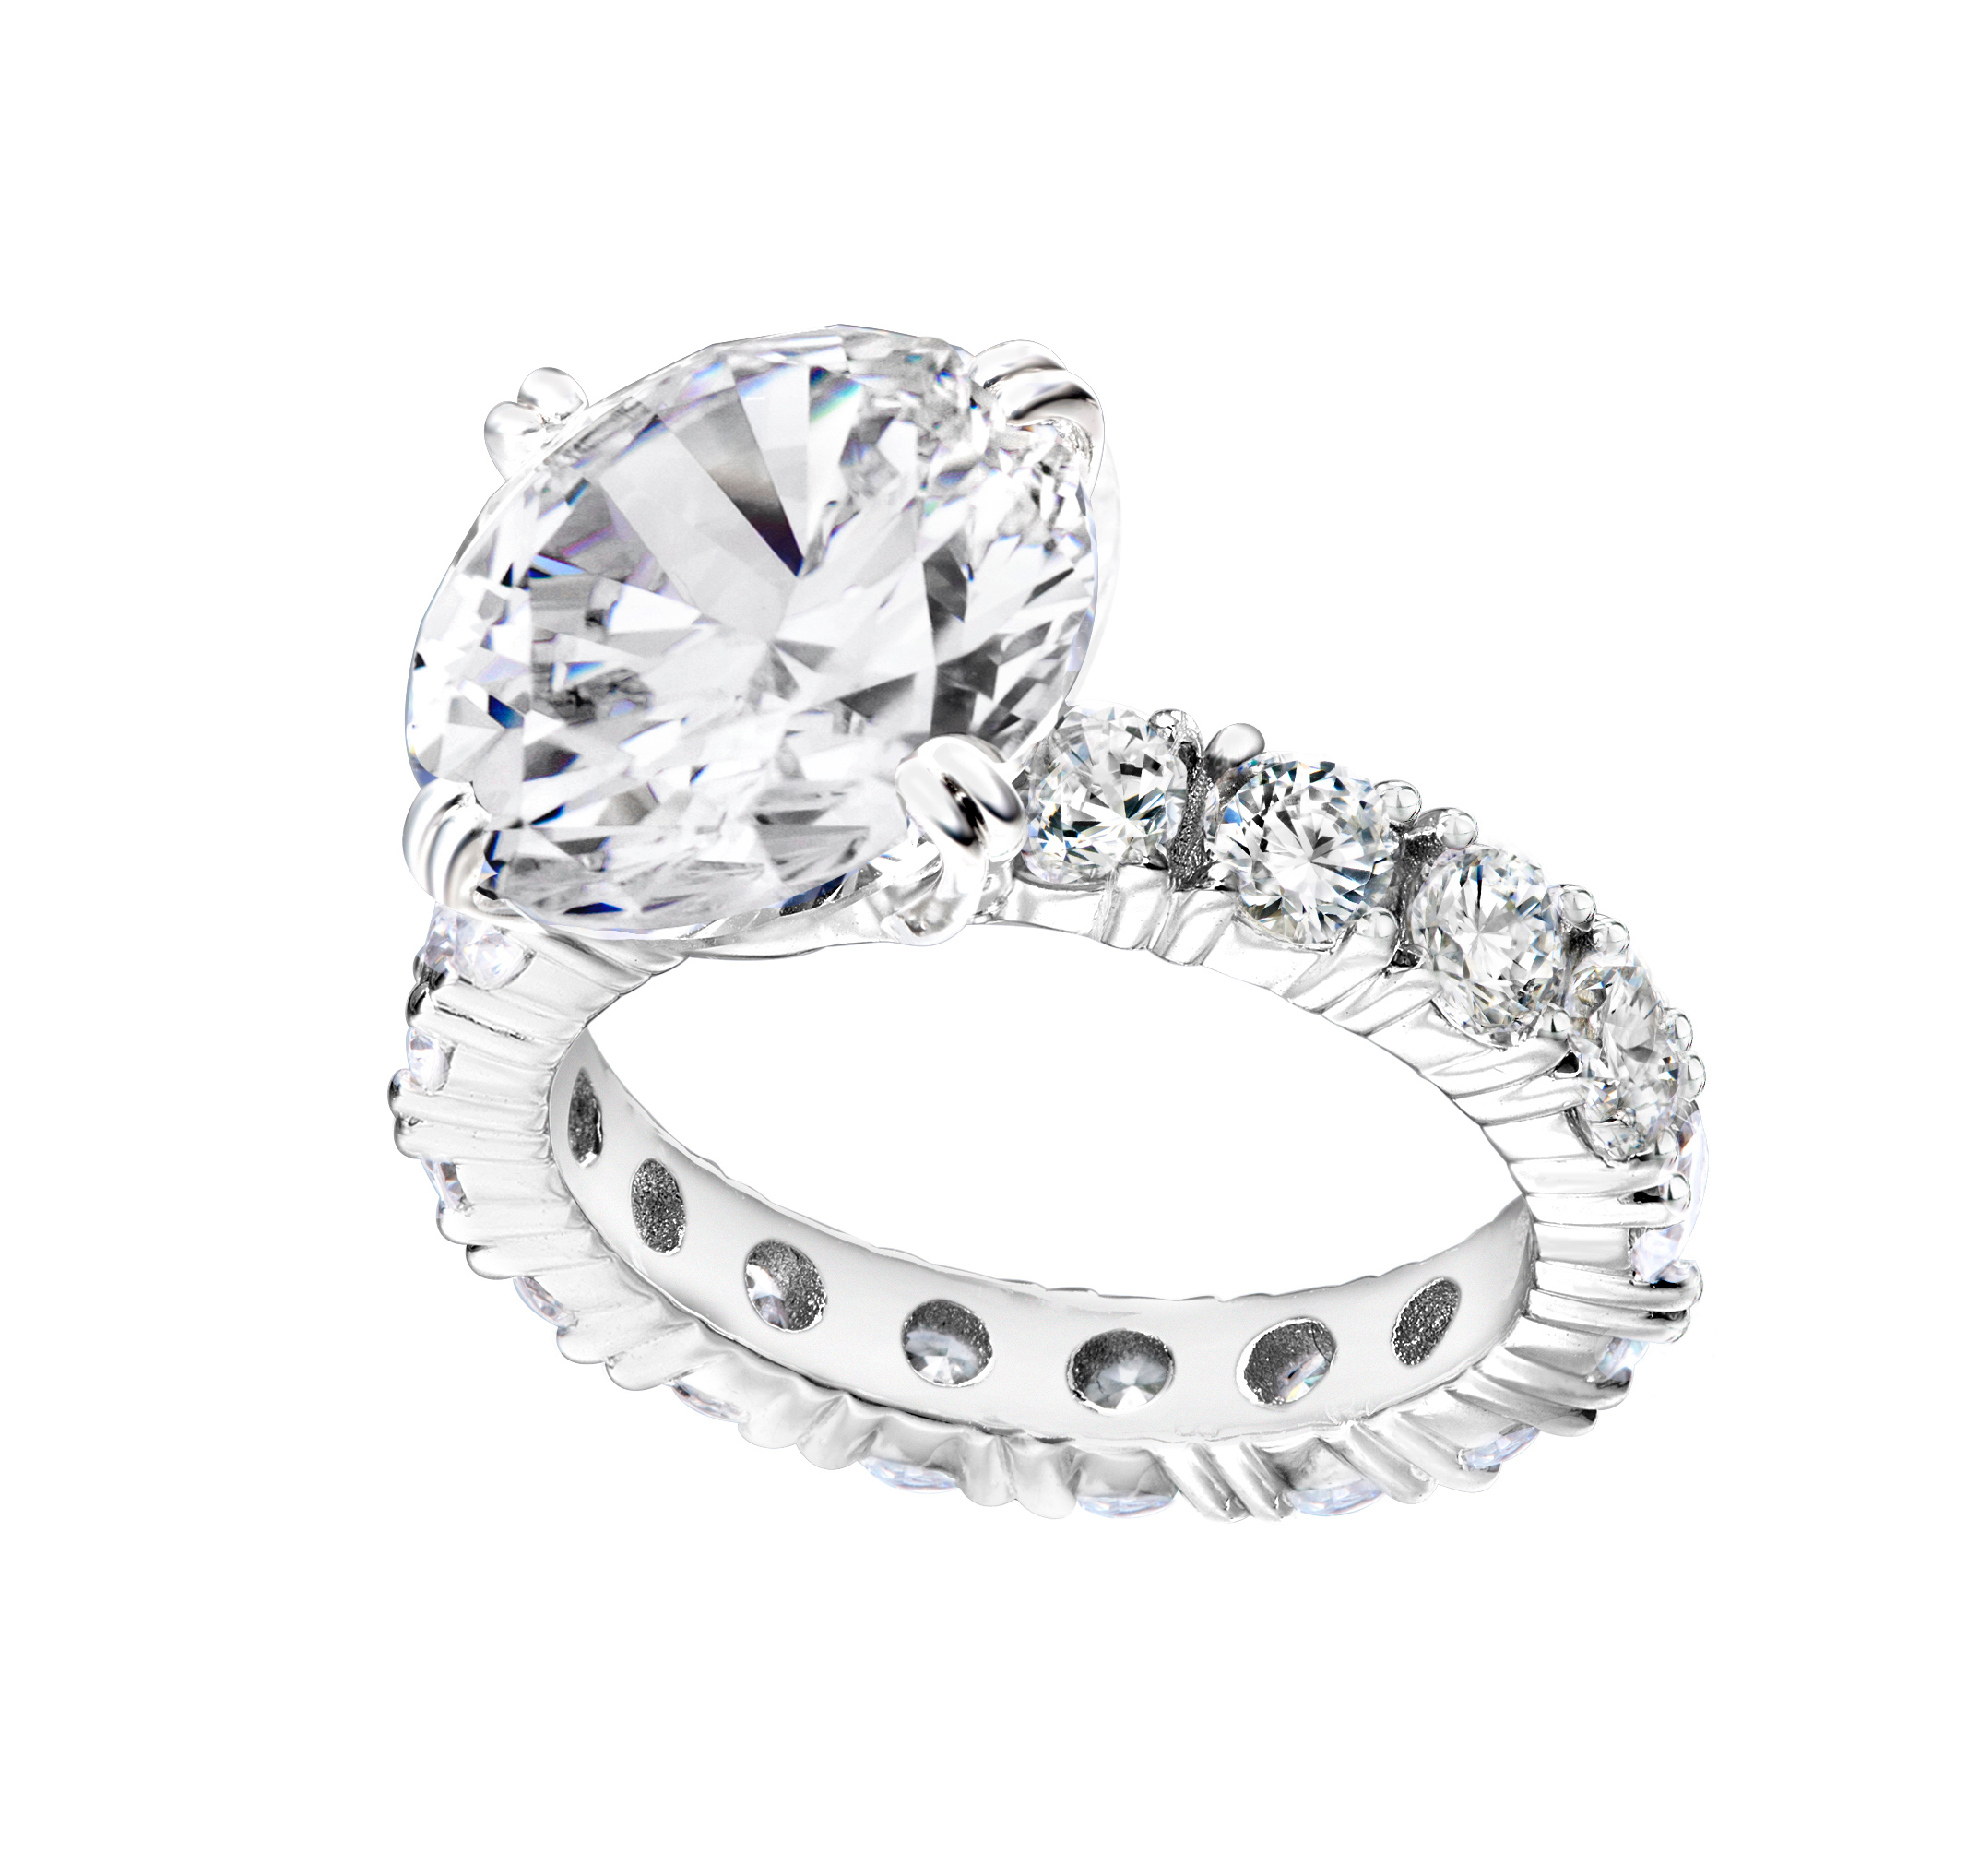 Silver 4 carat round solitaire ring on eternity band z30210 a 210000000436 wdkrkt